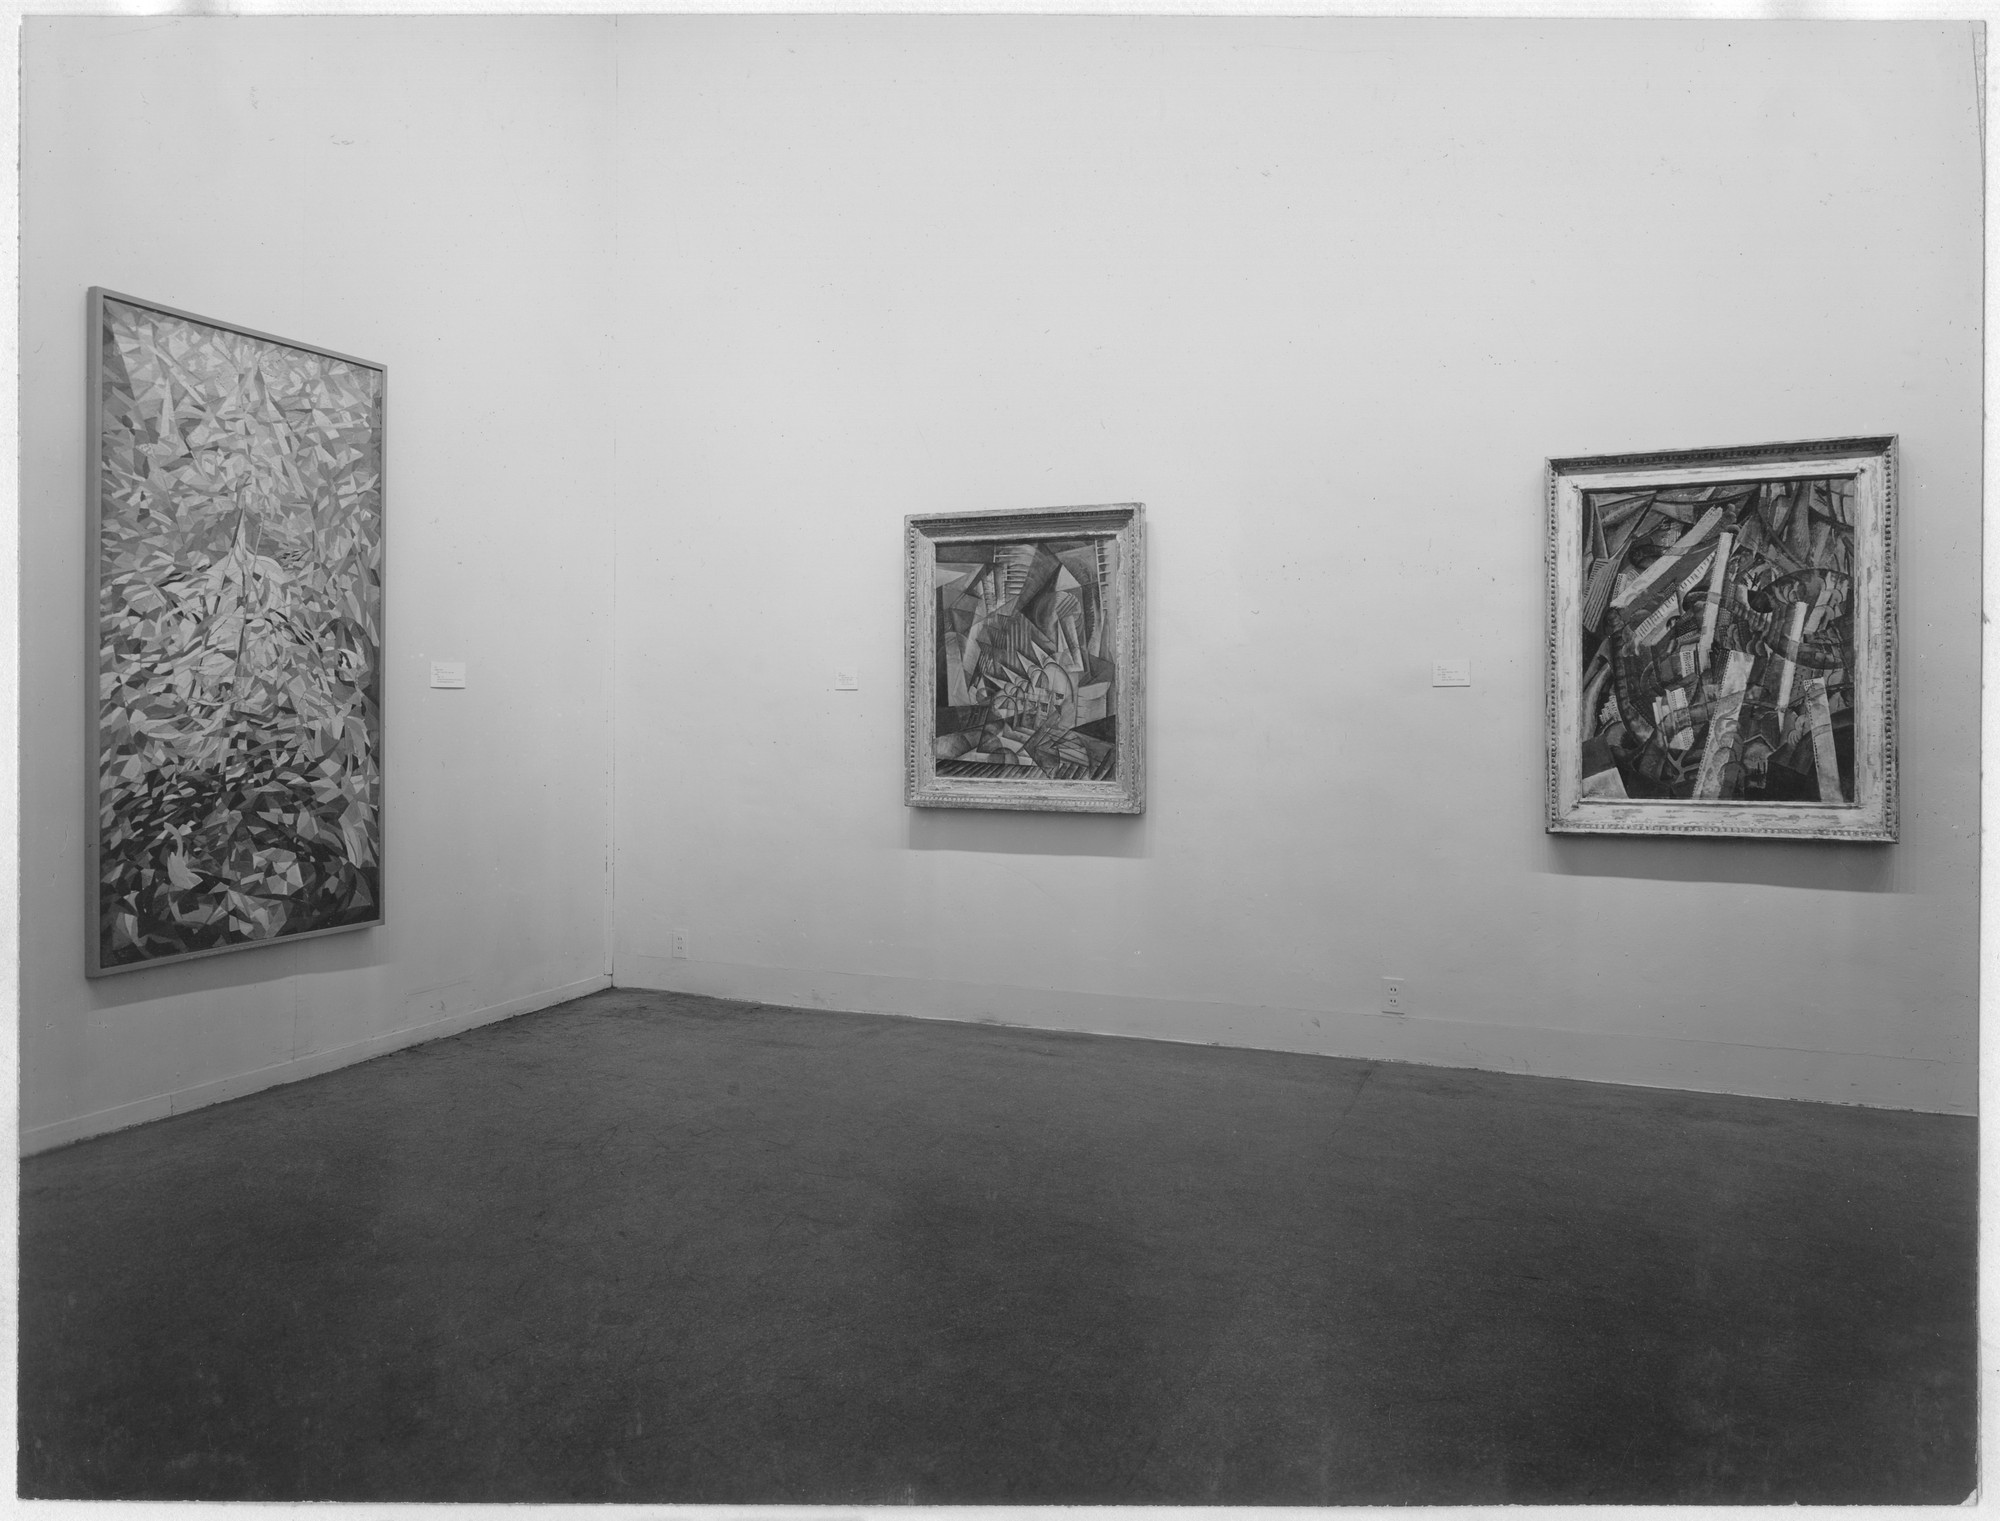 "Installation view of the exhibition, ""Abstract Painting and Sculpture in America."" January 23, 1951–March 25, 1951. Photographic Archive. The Museum of Modern Art Archives, New York. IN466.1. Photograph by Soichi Sunami."